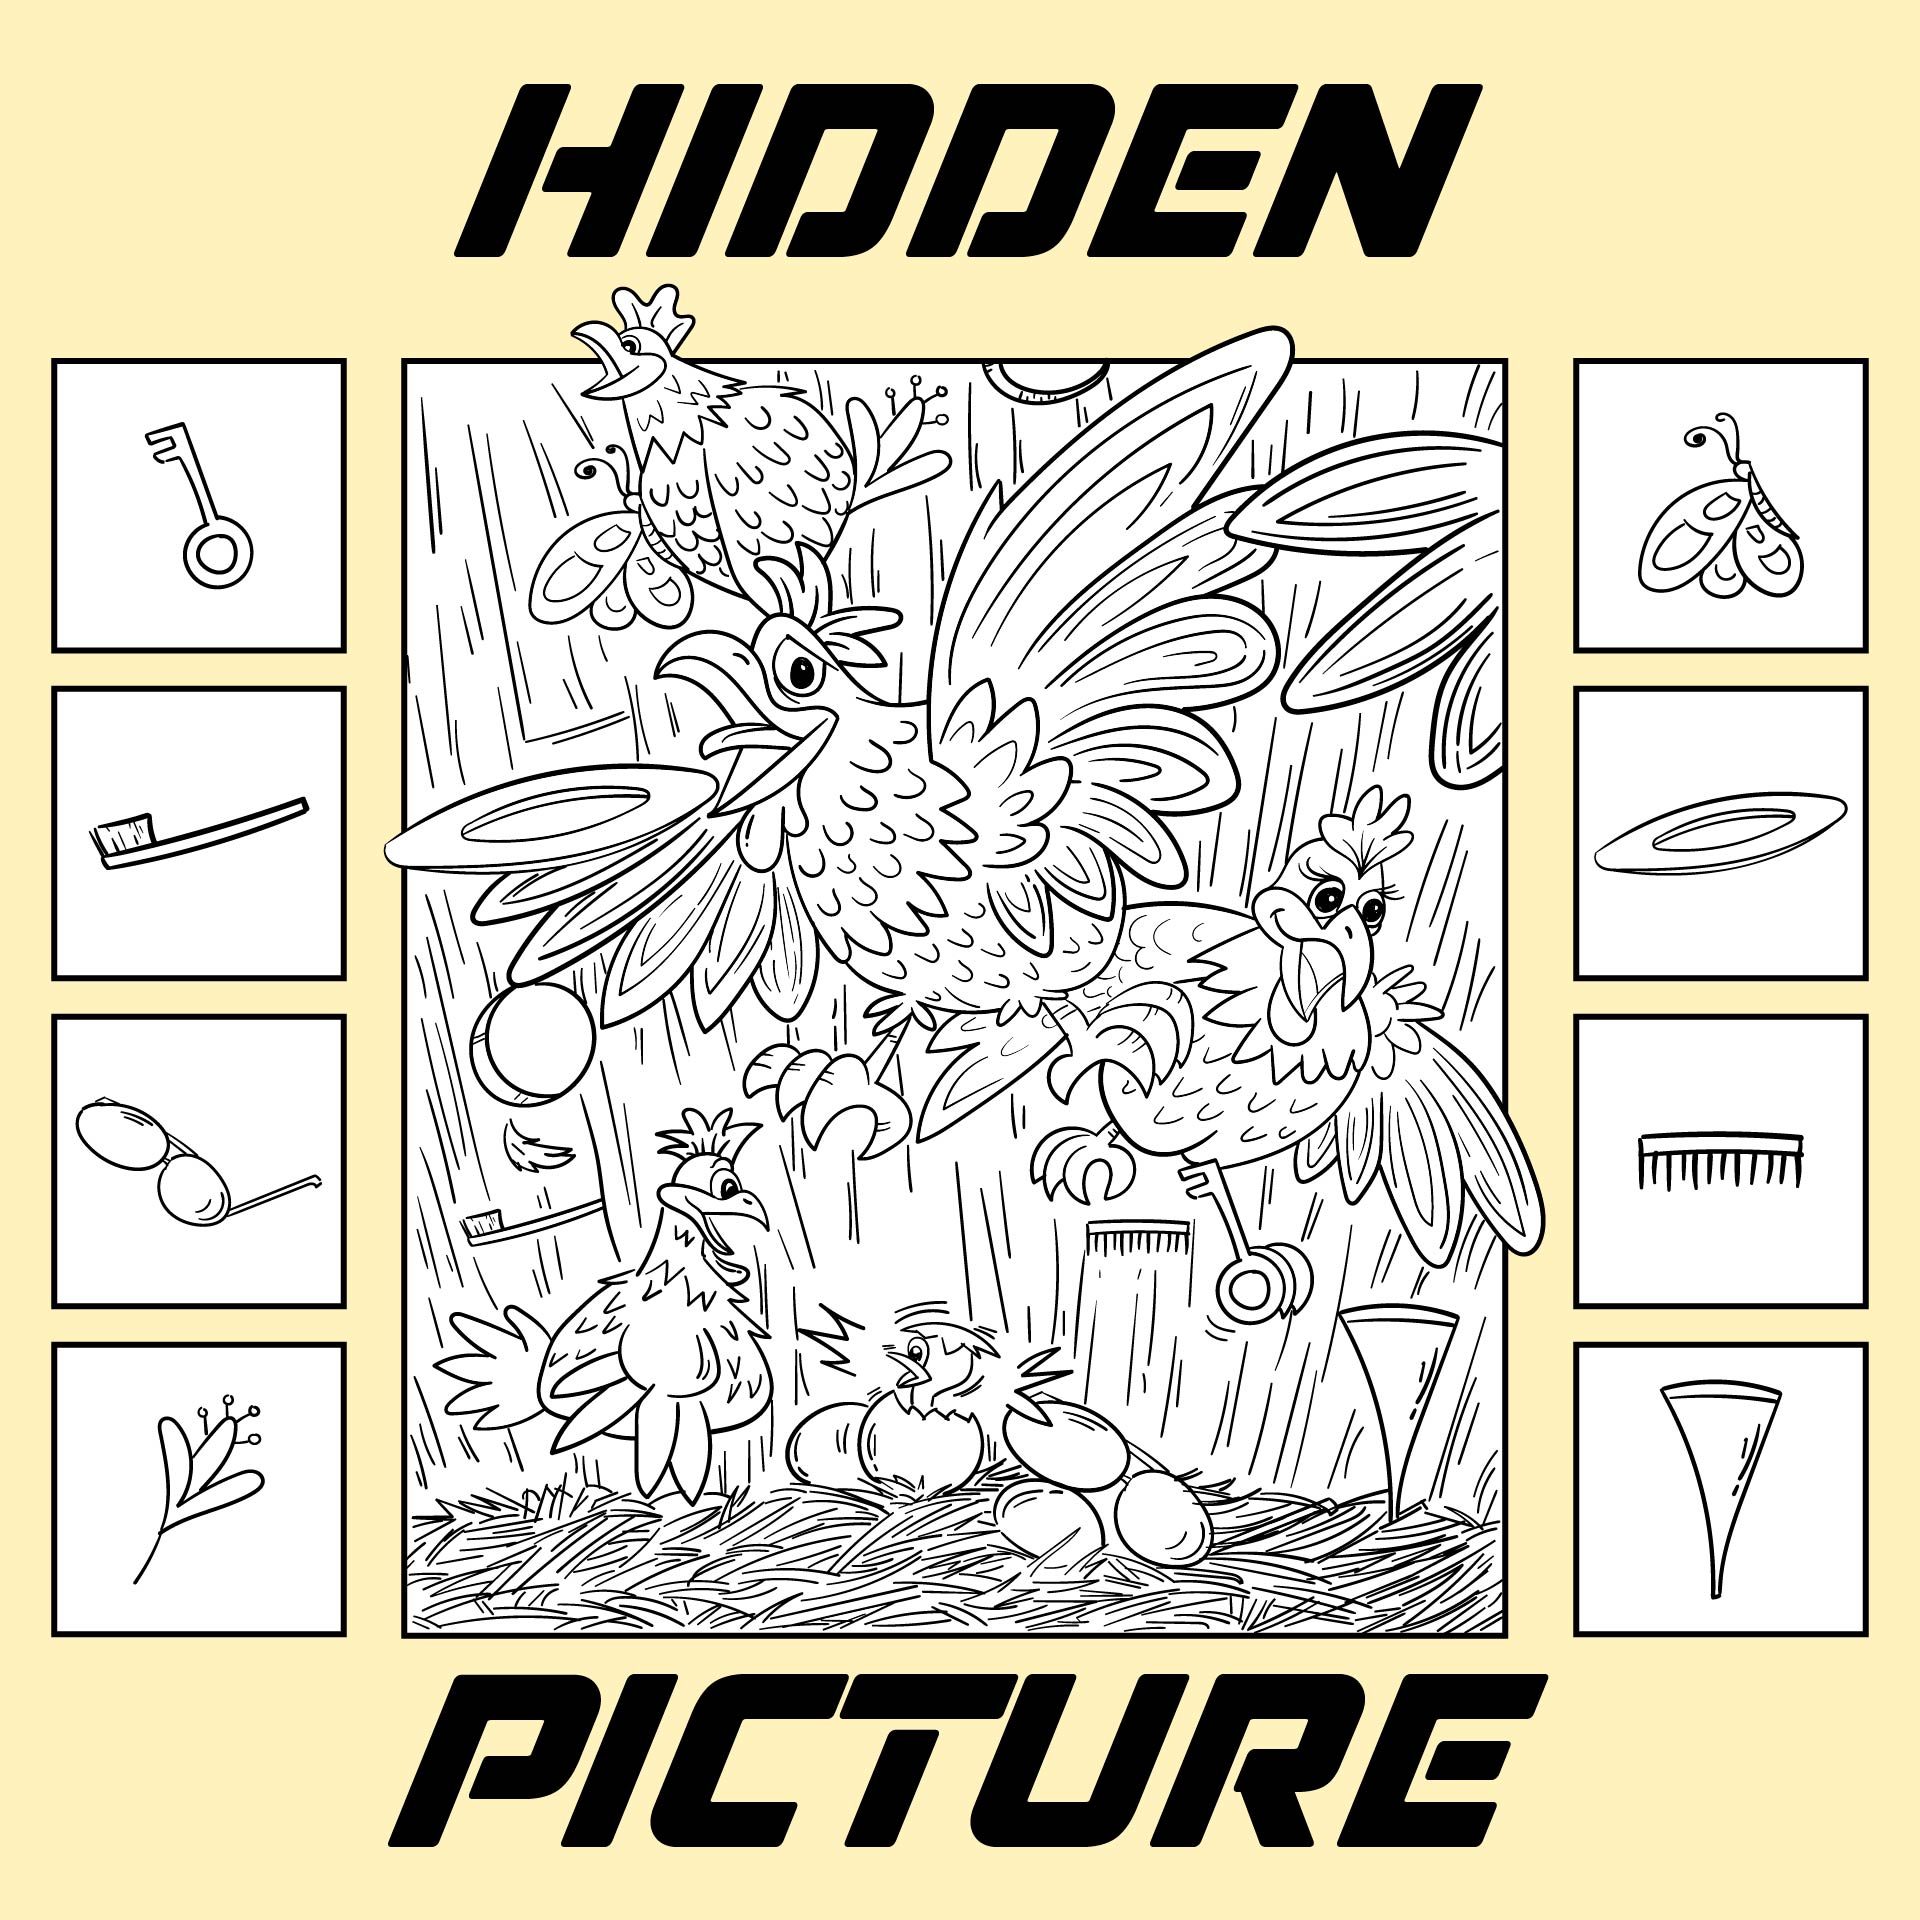 Easy Hidden Pictures Free Printable